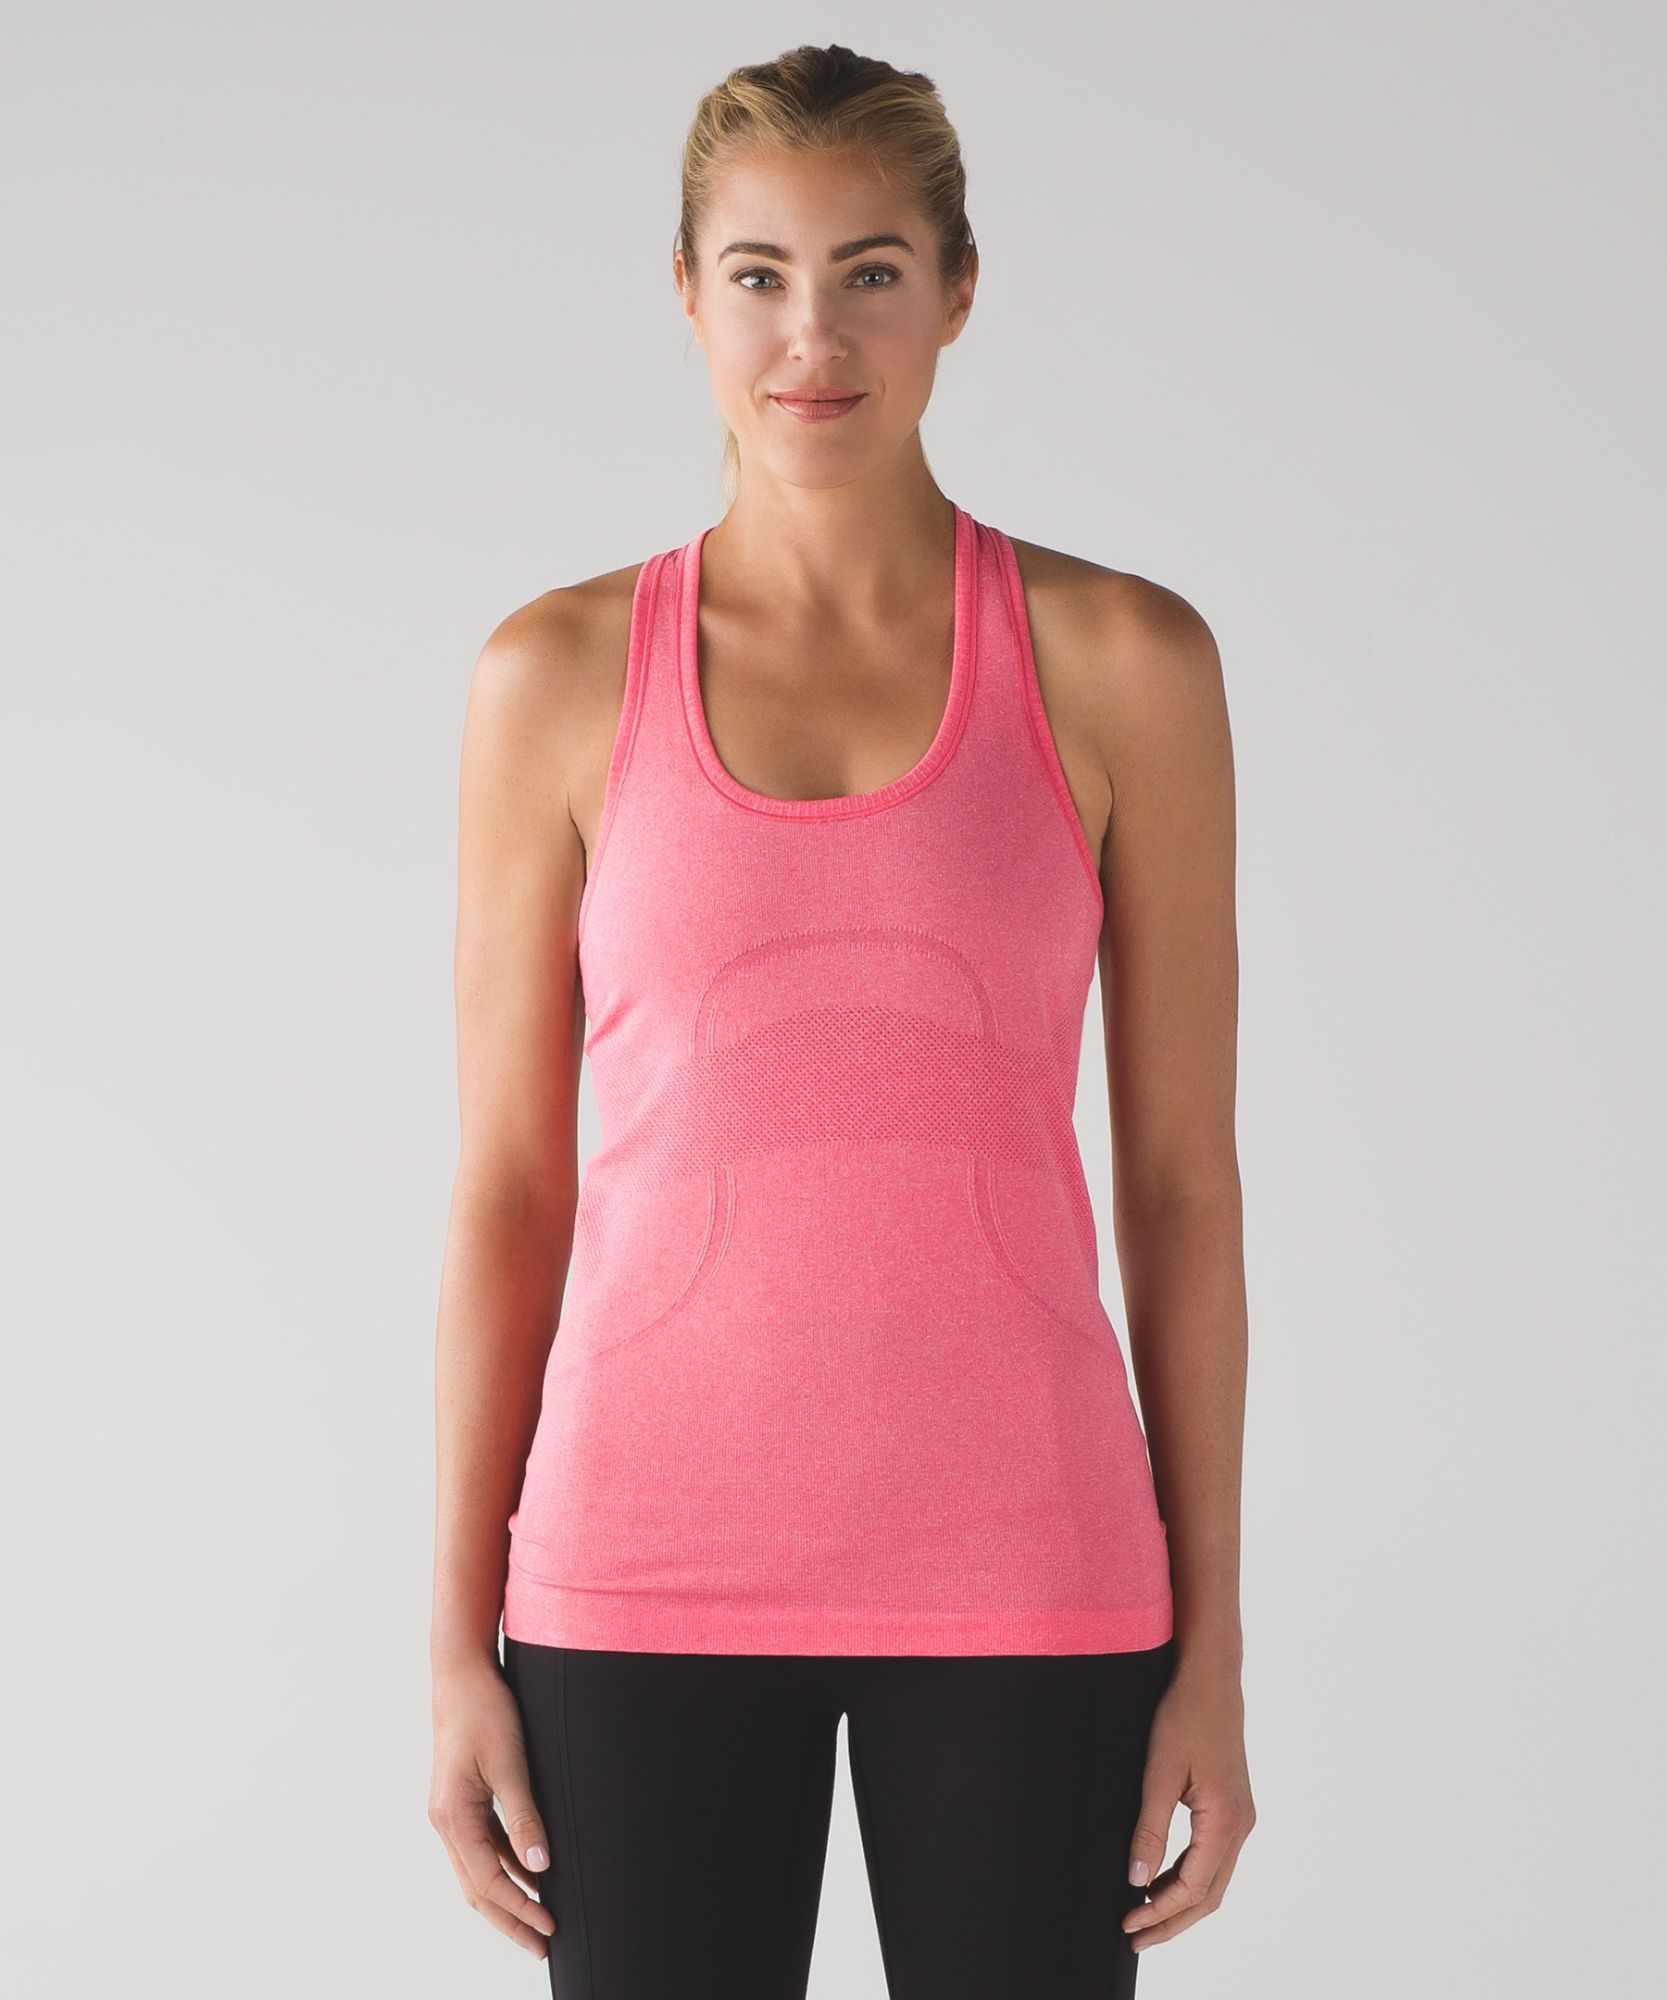 d36eec14de4cf Lululemon Swiftly tech racerback